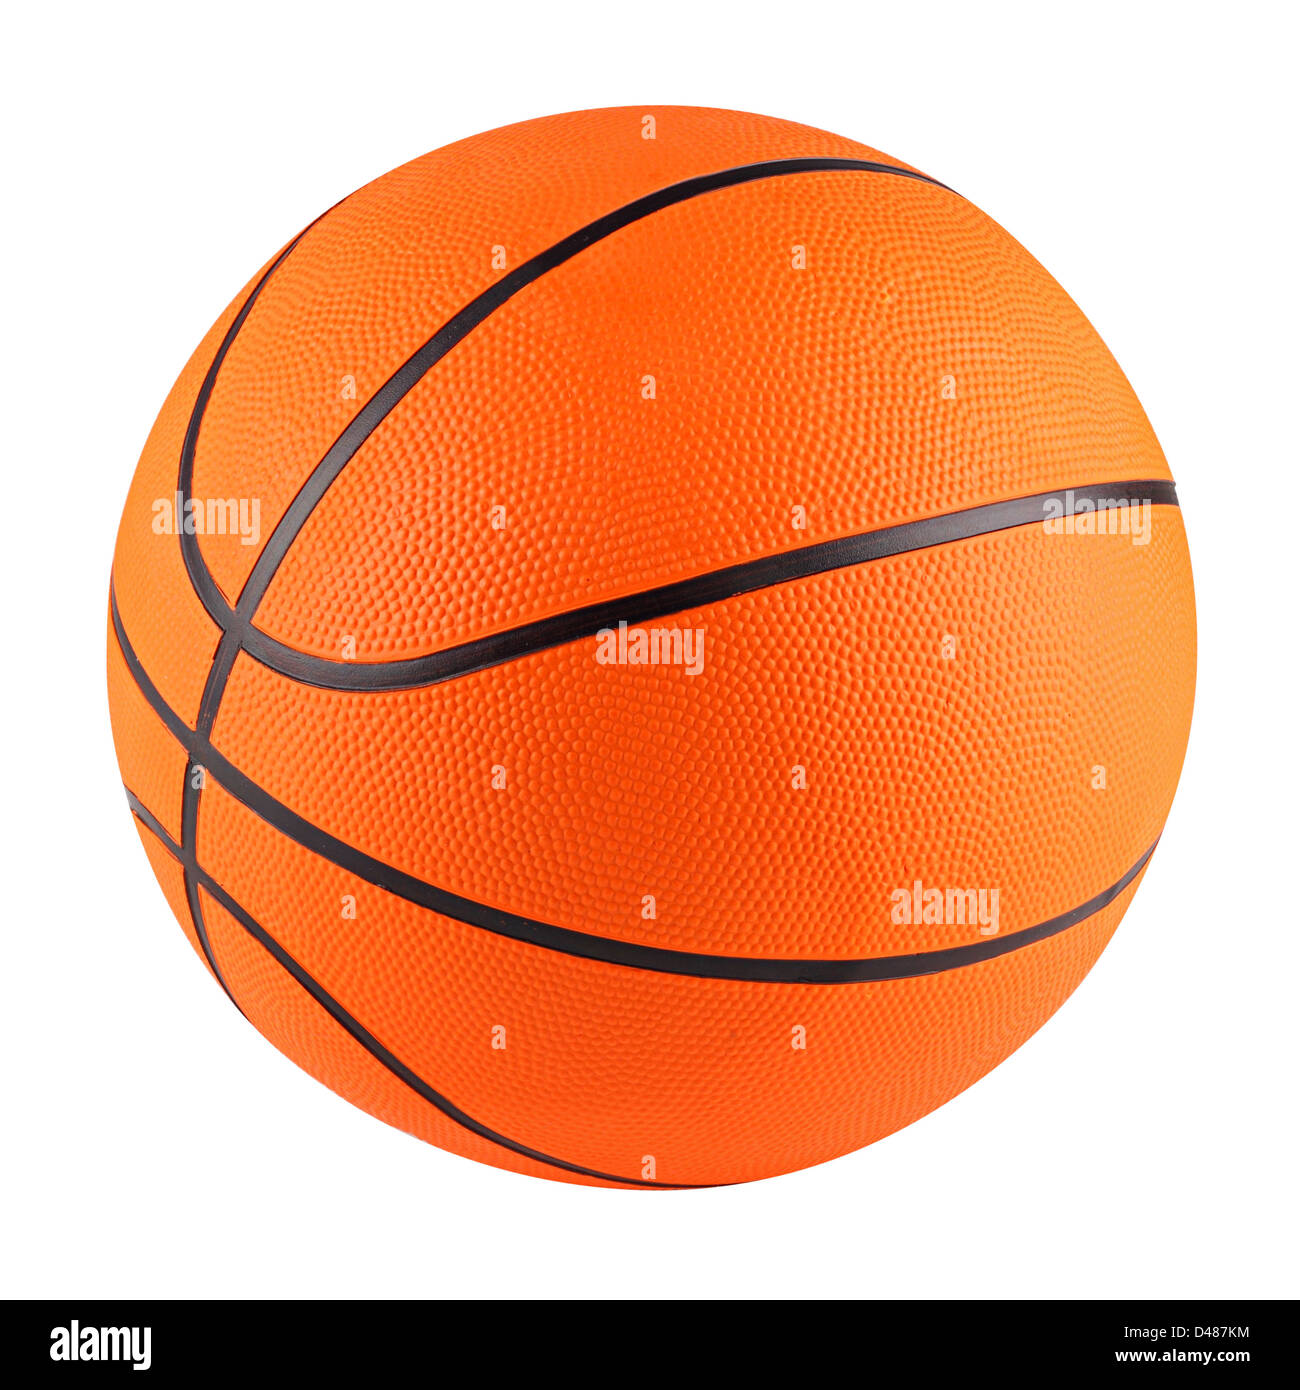 a orange basketball in front of white background - Stock Image